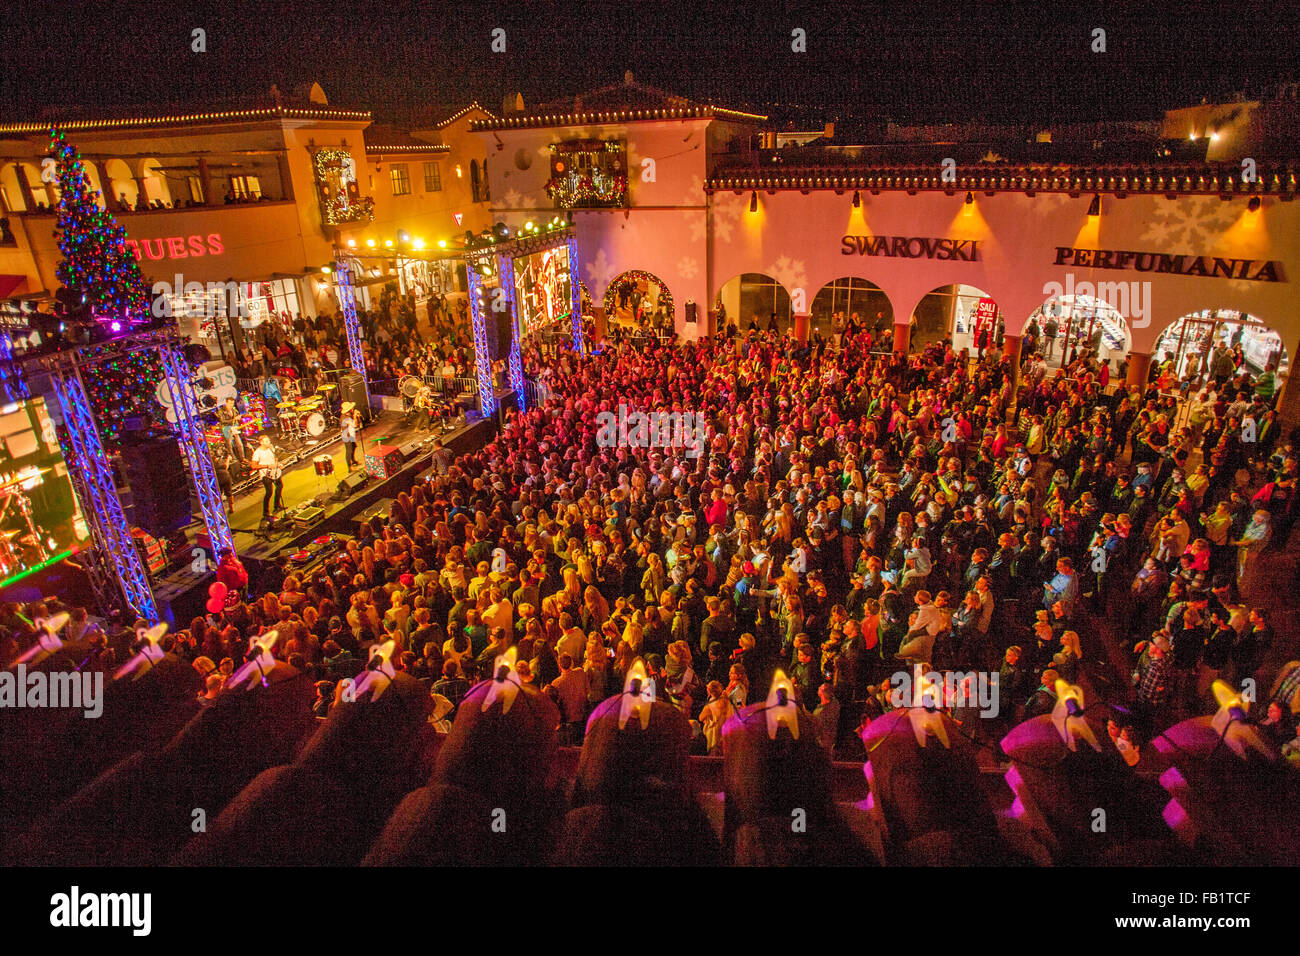 Framed By Roof Tiles, A Large Audience Attends A Night Time Christmas Rock U0027 Nu0027 Roll Concert At A San Clemente, CA, Shopping Mall. Note Christmas Tree  On ...